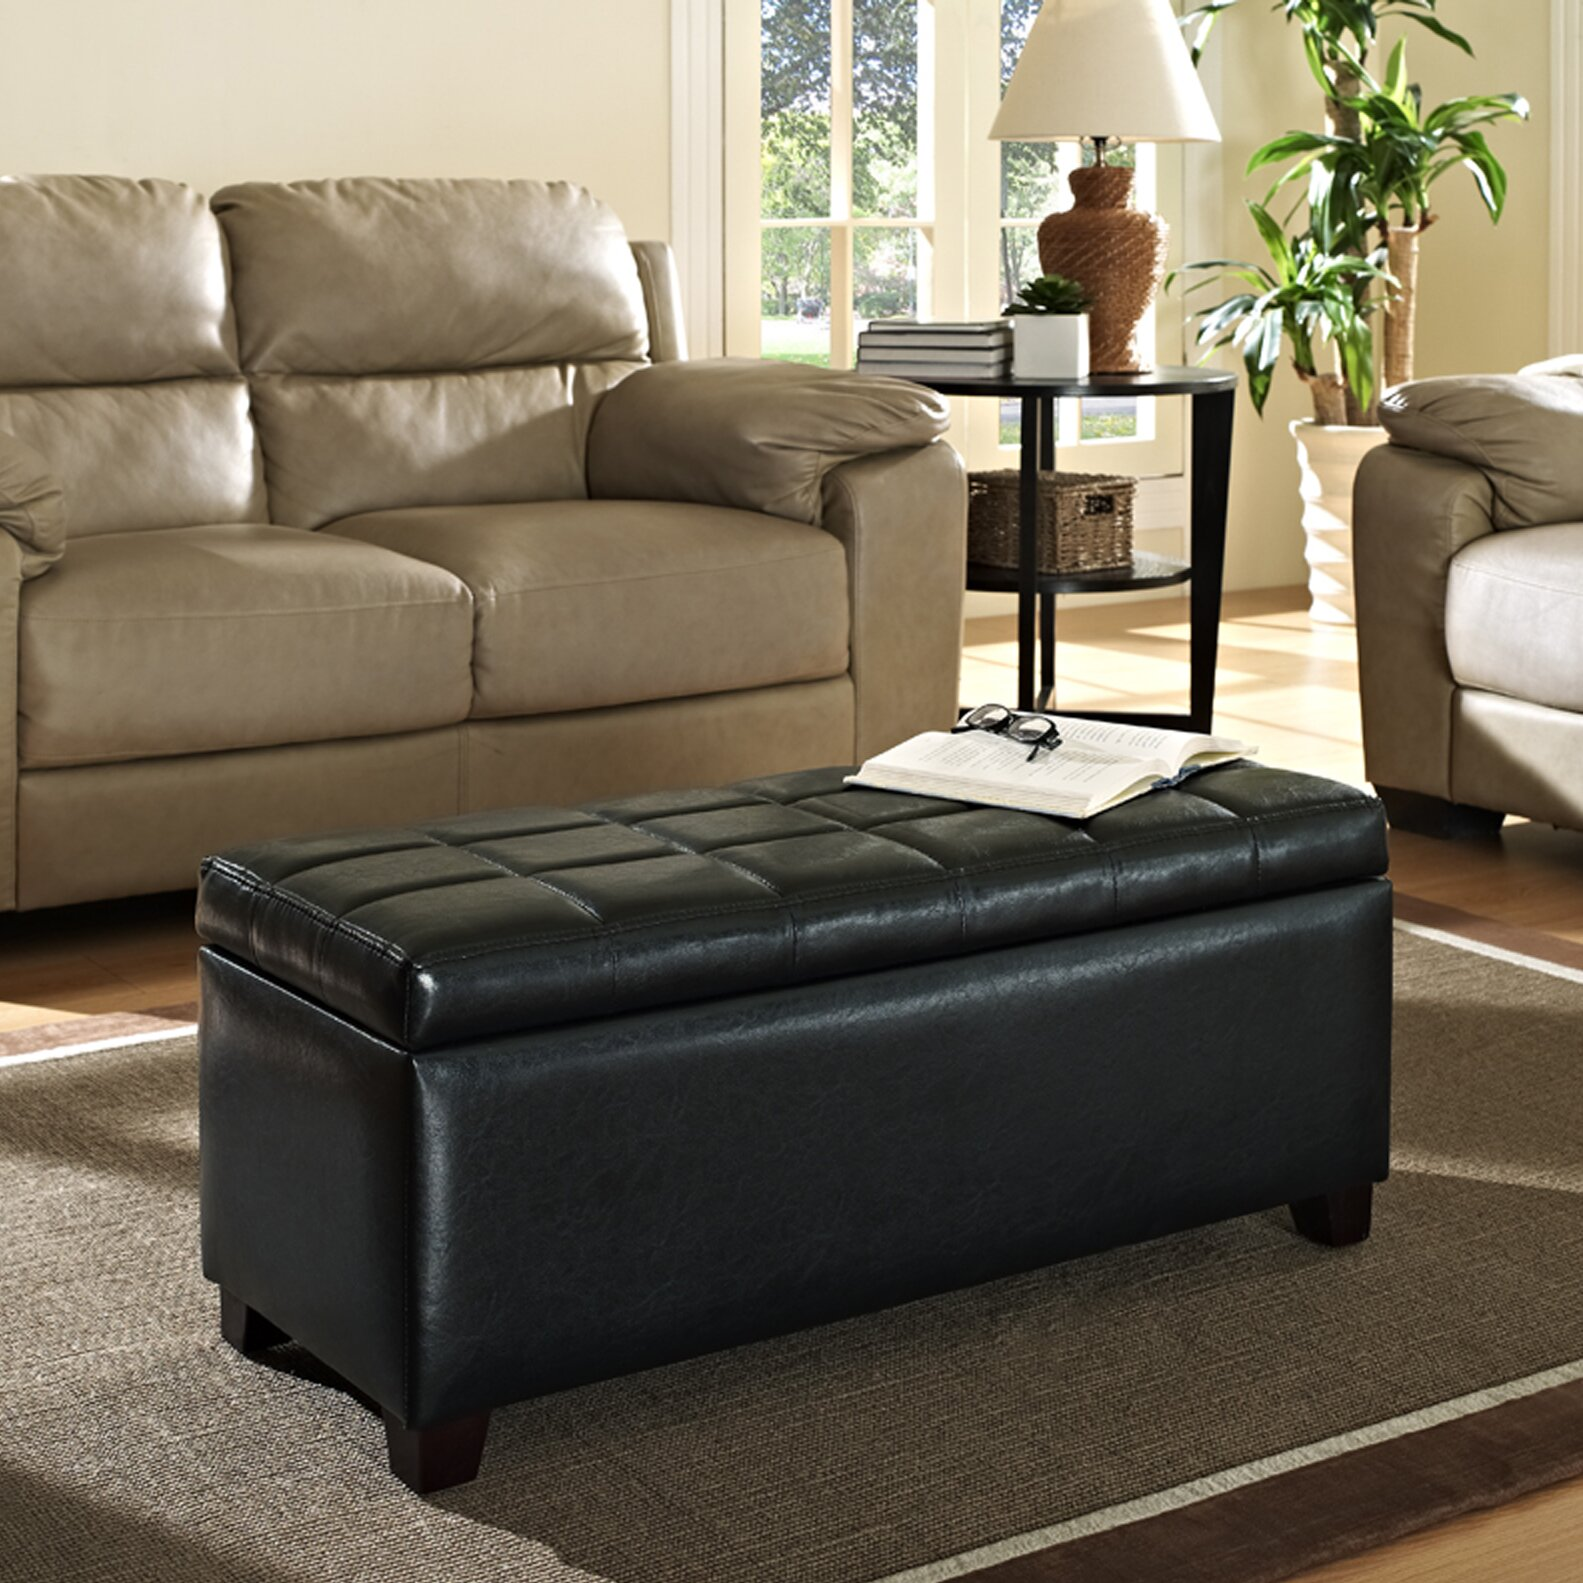 worldwide homefurnishings storage bedroom bench reviews